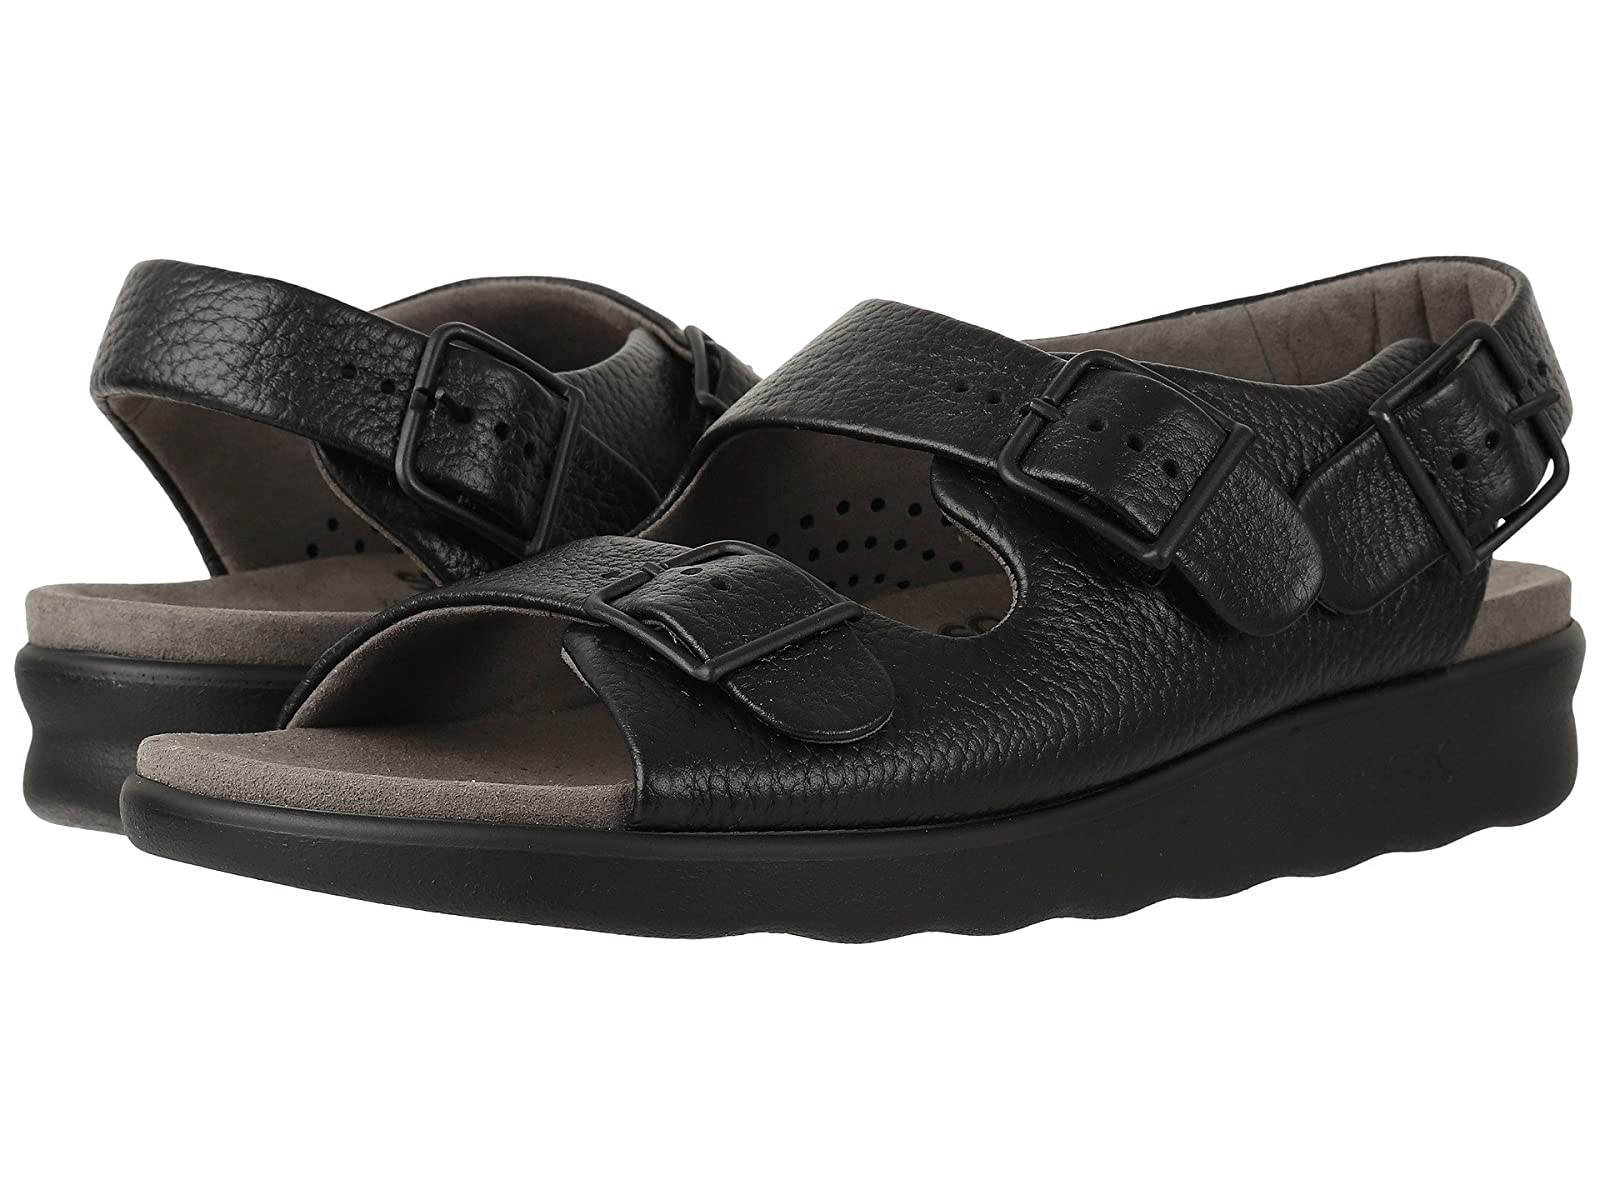 SAS RelaxedAtmospheric grades have affordable shoes